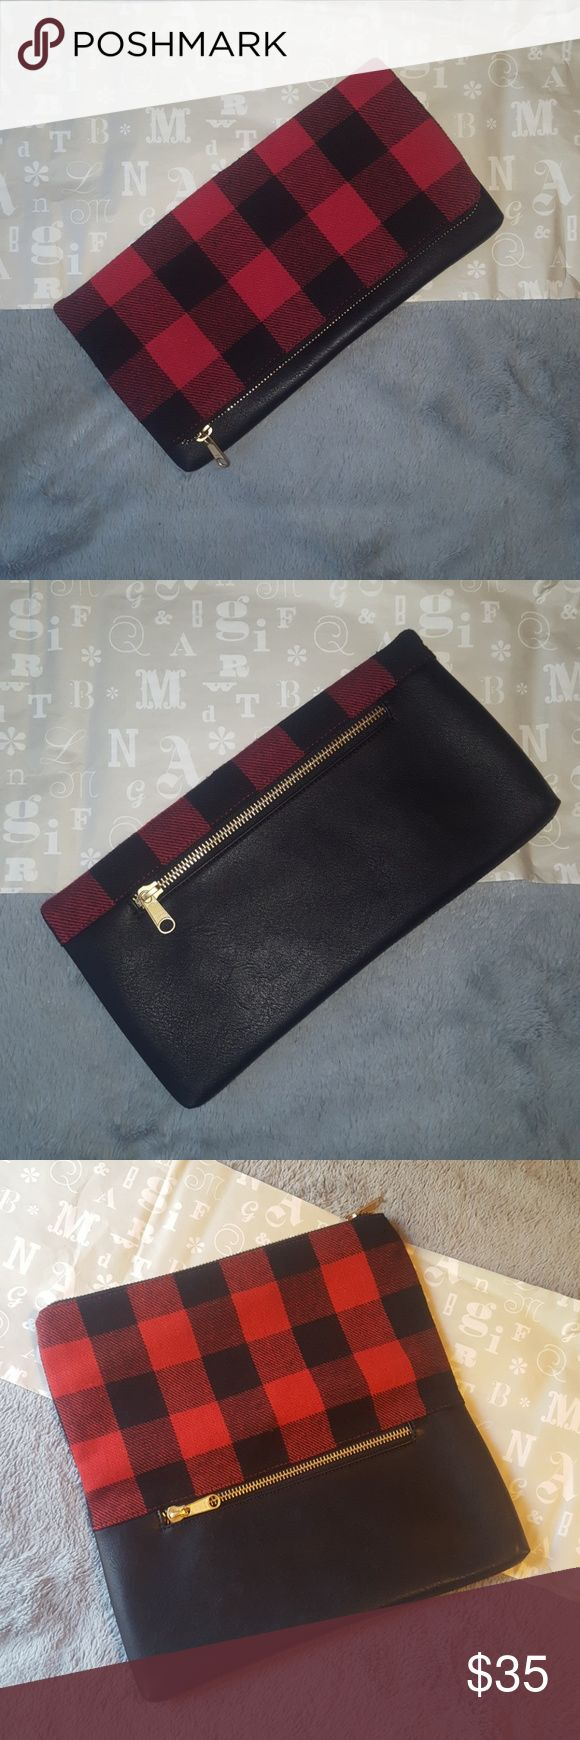 """Mark and Graham Clutch NEW Mark and Graham Buffalo Check foldover clutch. Monogram free. Gift that's still in the box.  Linen lining, vegan leather, gold zippers.  6"""" h (Folded) x 13.5"""" w x 1"""" d Mark and Graham Bags Clutches & Wristlets"""